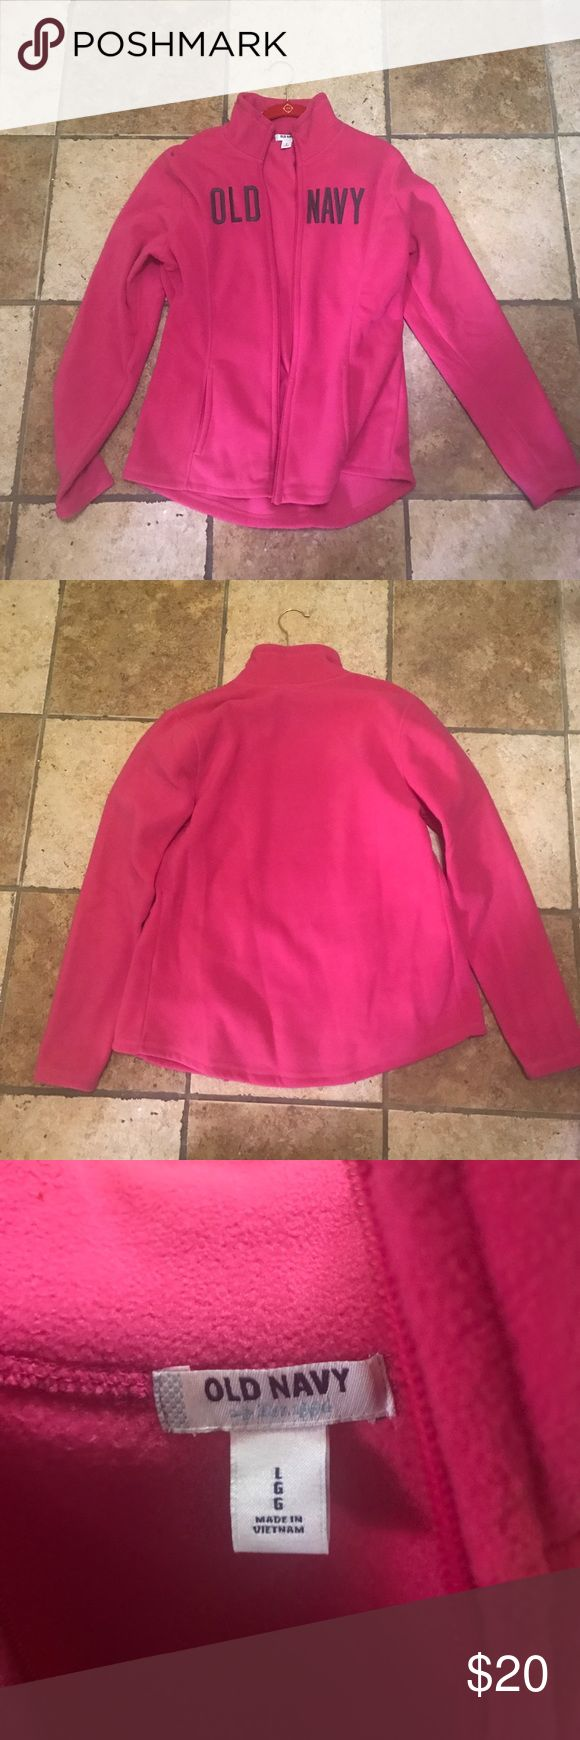 Old Navy Fleece Sweater Never worn. No tags. Super soft & cozy. Great for layering or wearing alone. old navy  Tops Sweatshirts & Hoodies